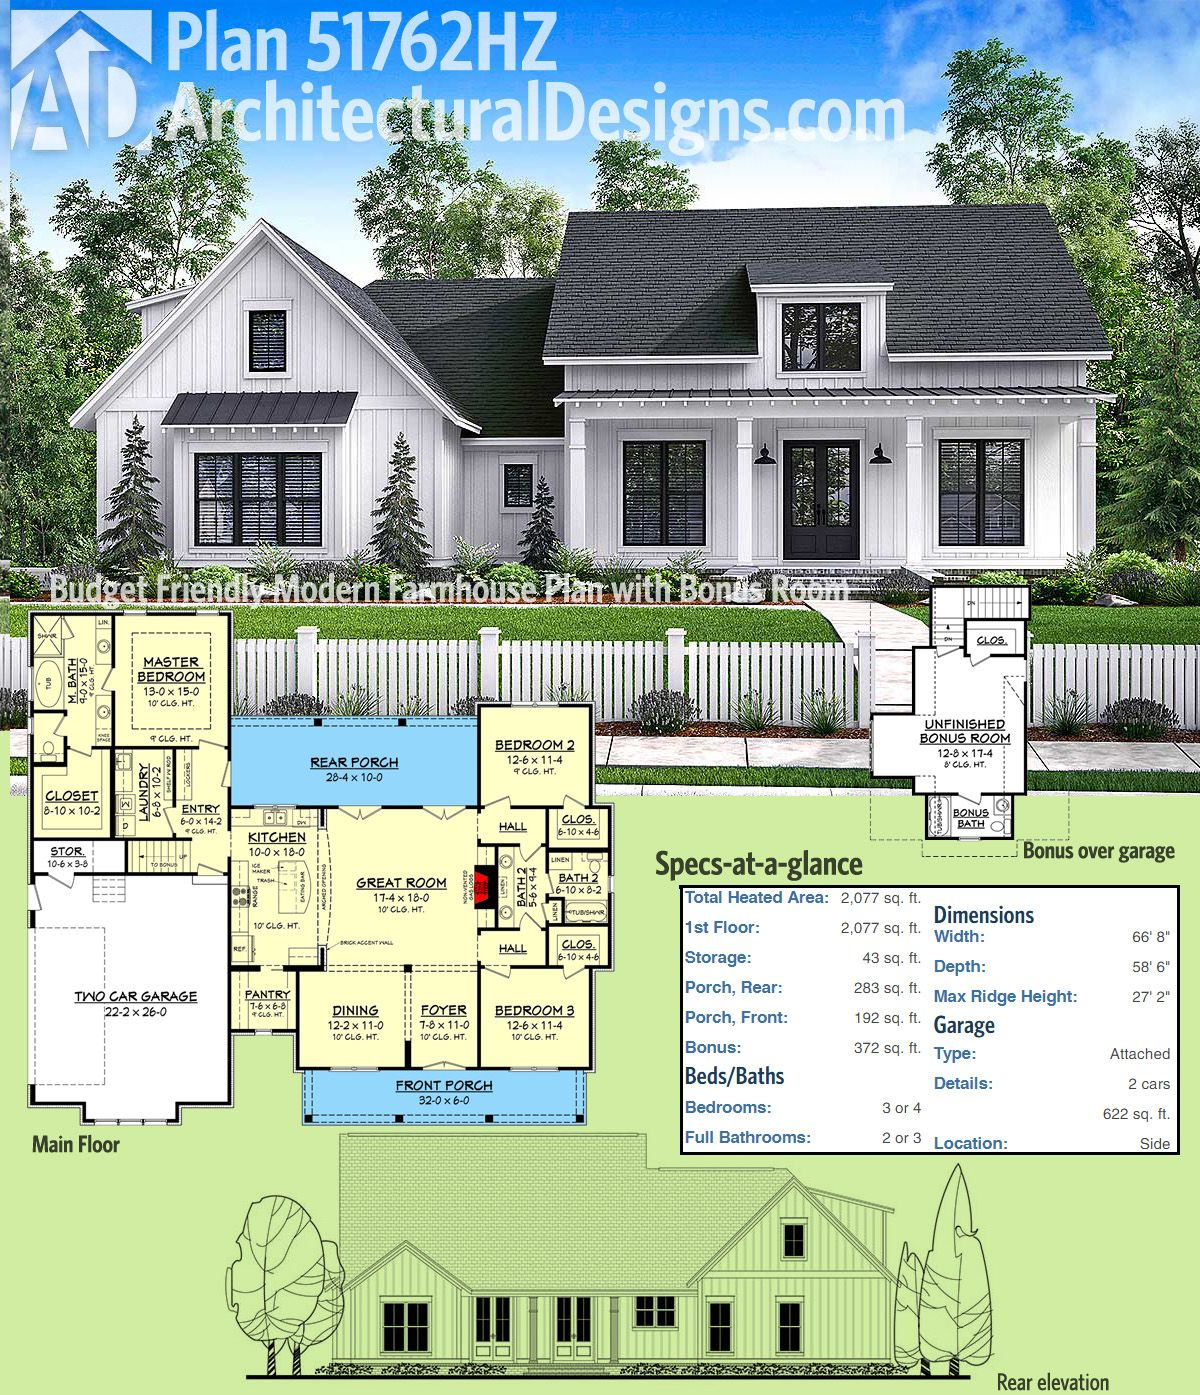 Plan 51762hz budget friendly modern farmhouse plan with for Modern long house plans